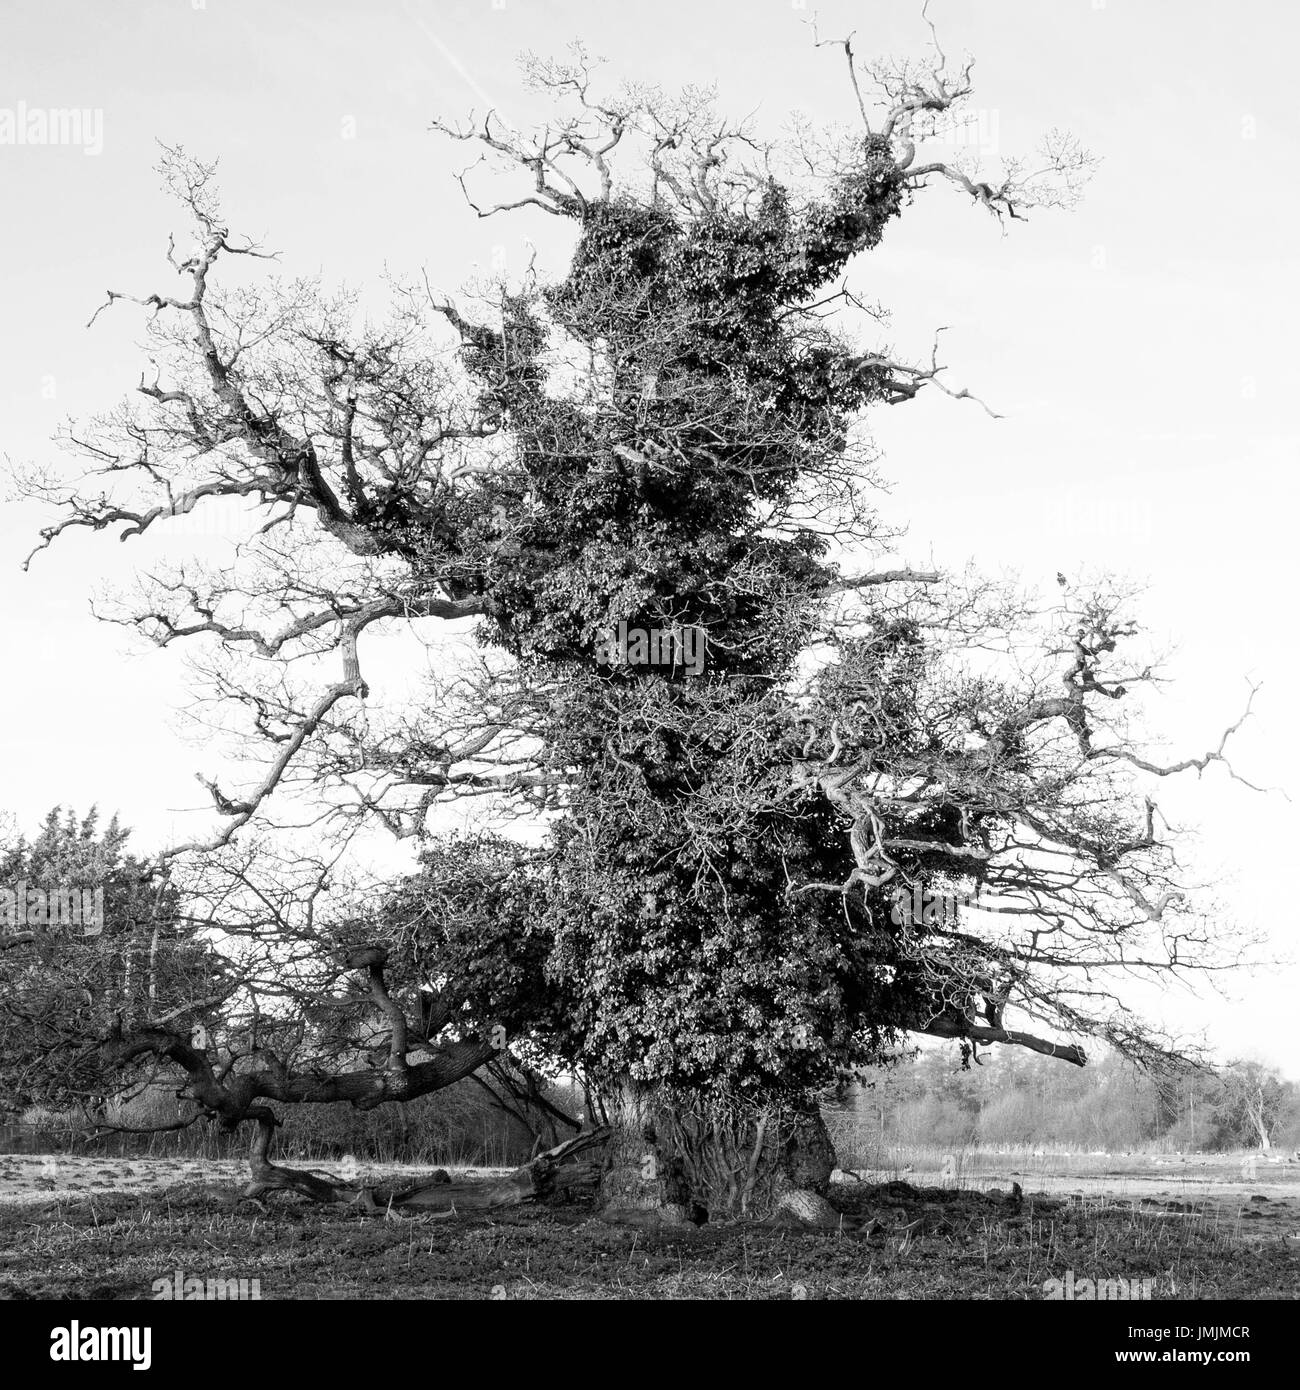 Ancient Oak with Large Girth in Winter Stock Photo